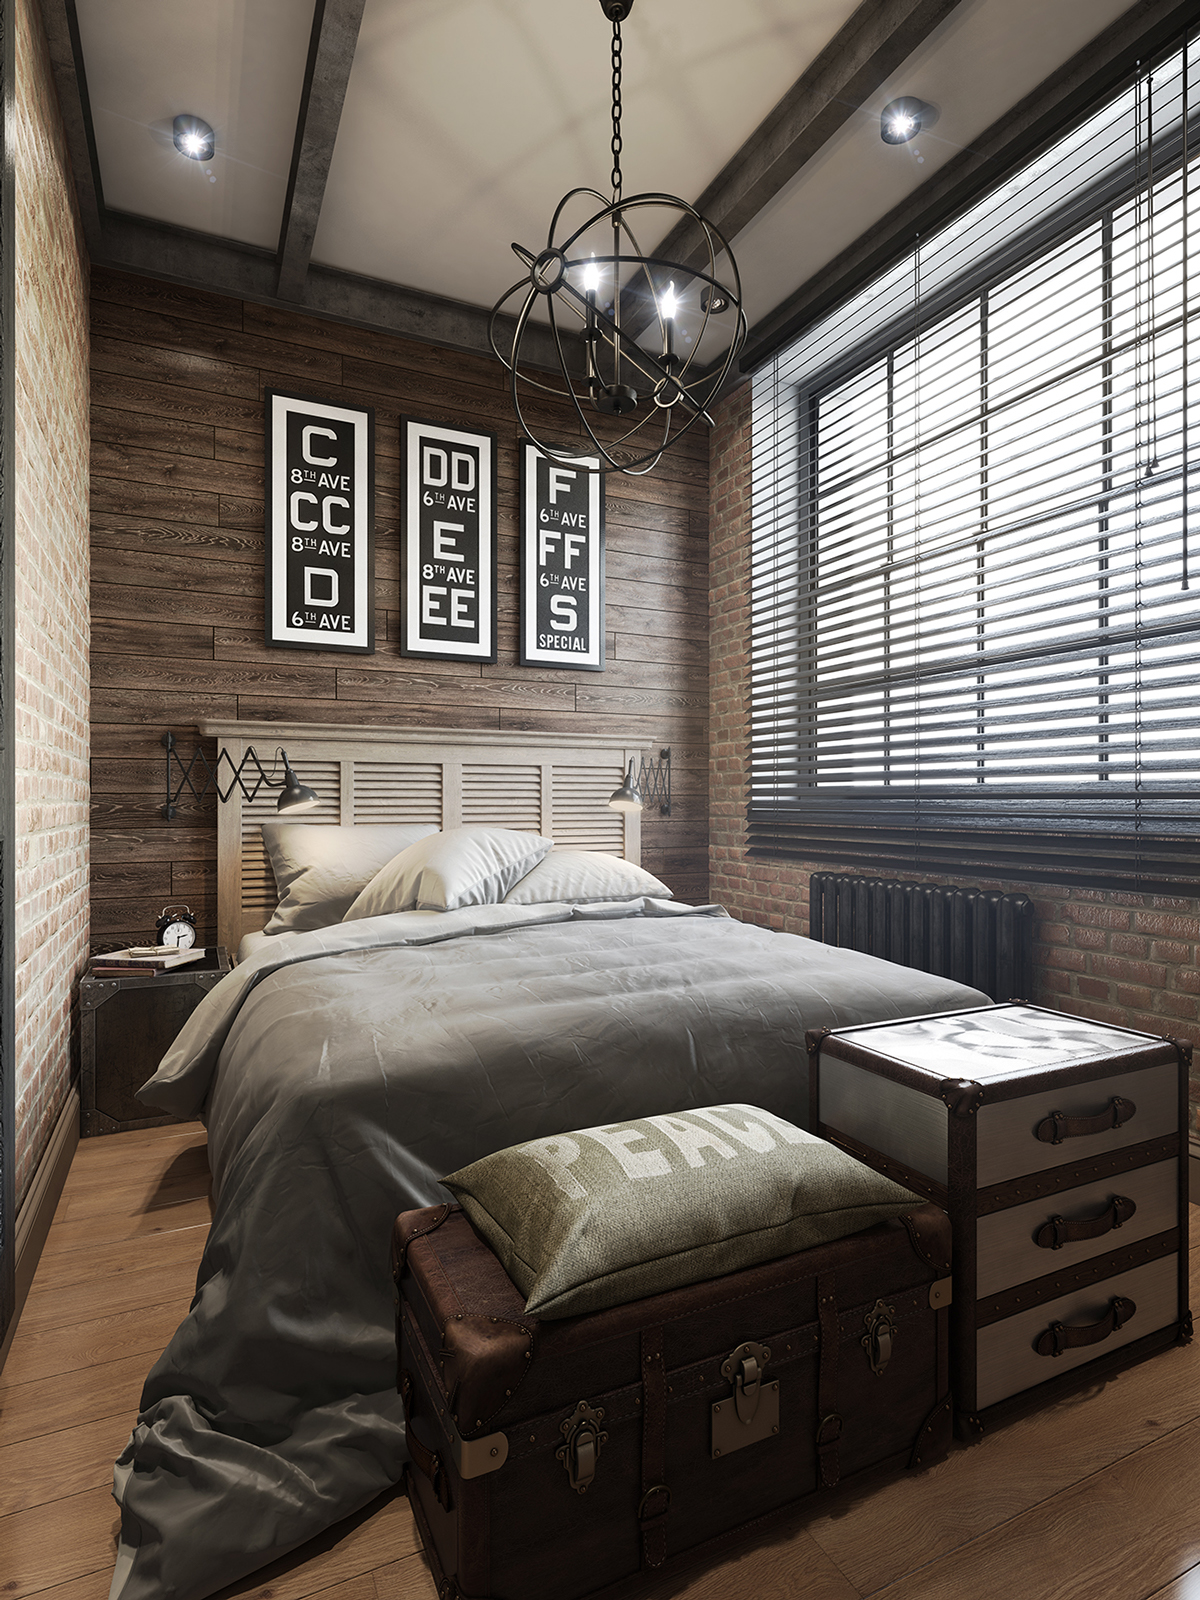 Wood Paneled Room Design: Three Dark Colored Loft Apartments With Exposed Brick Walls